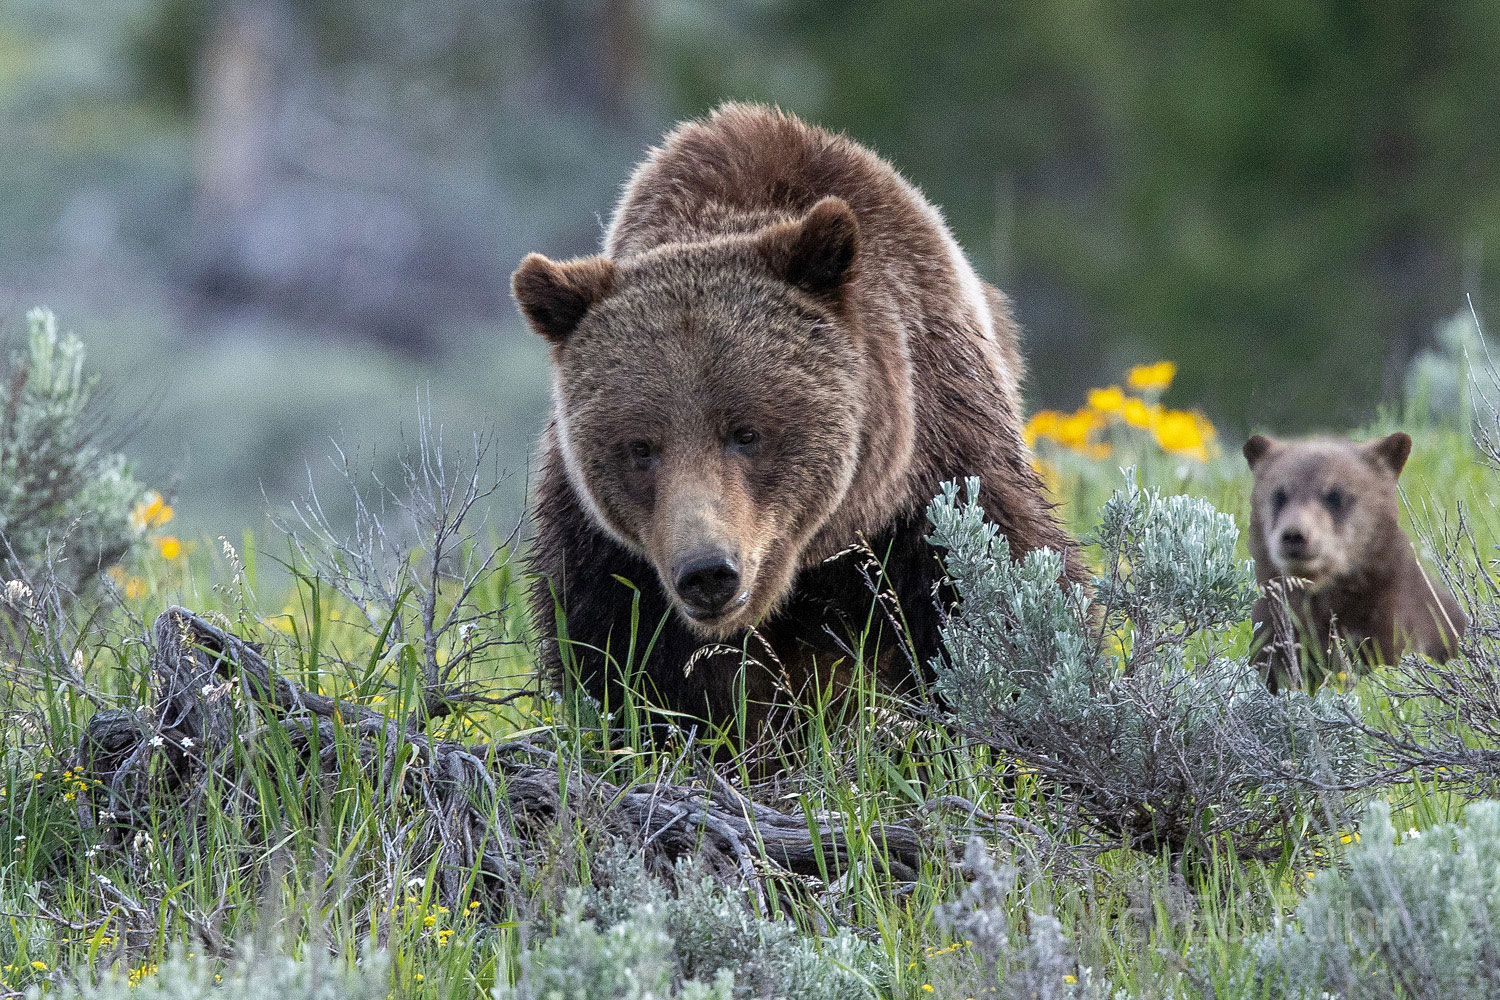 Grizzly 399 and one of her cubs make their way through the sage.